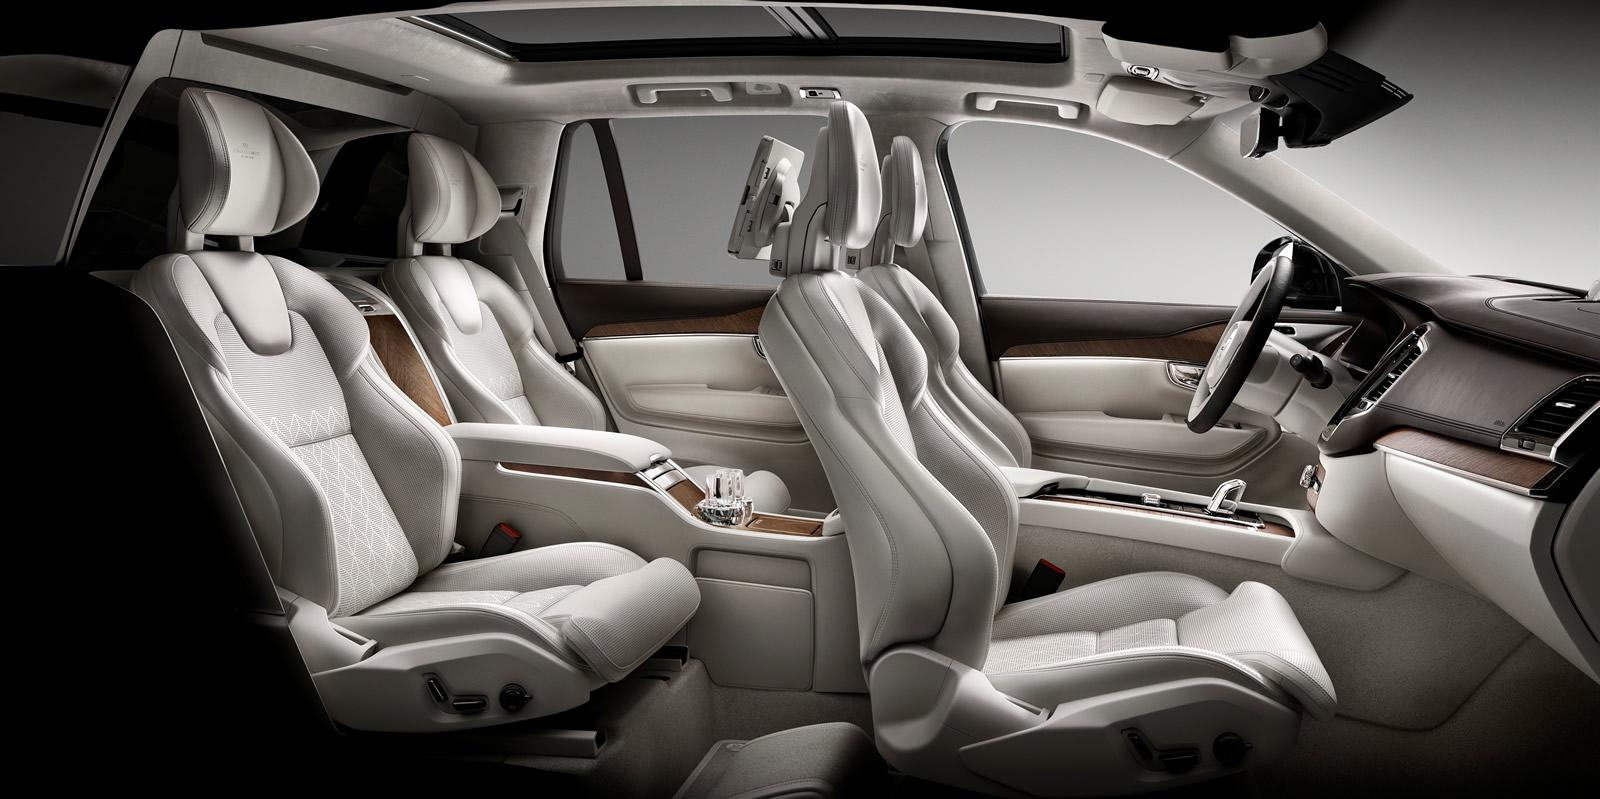 Bmw With 3Rd Row Seating >> Volvo Unveils XC90 Excellence 4-Seat Luxury SUV for ...